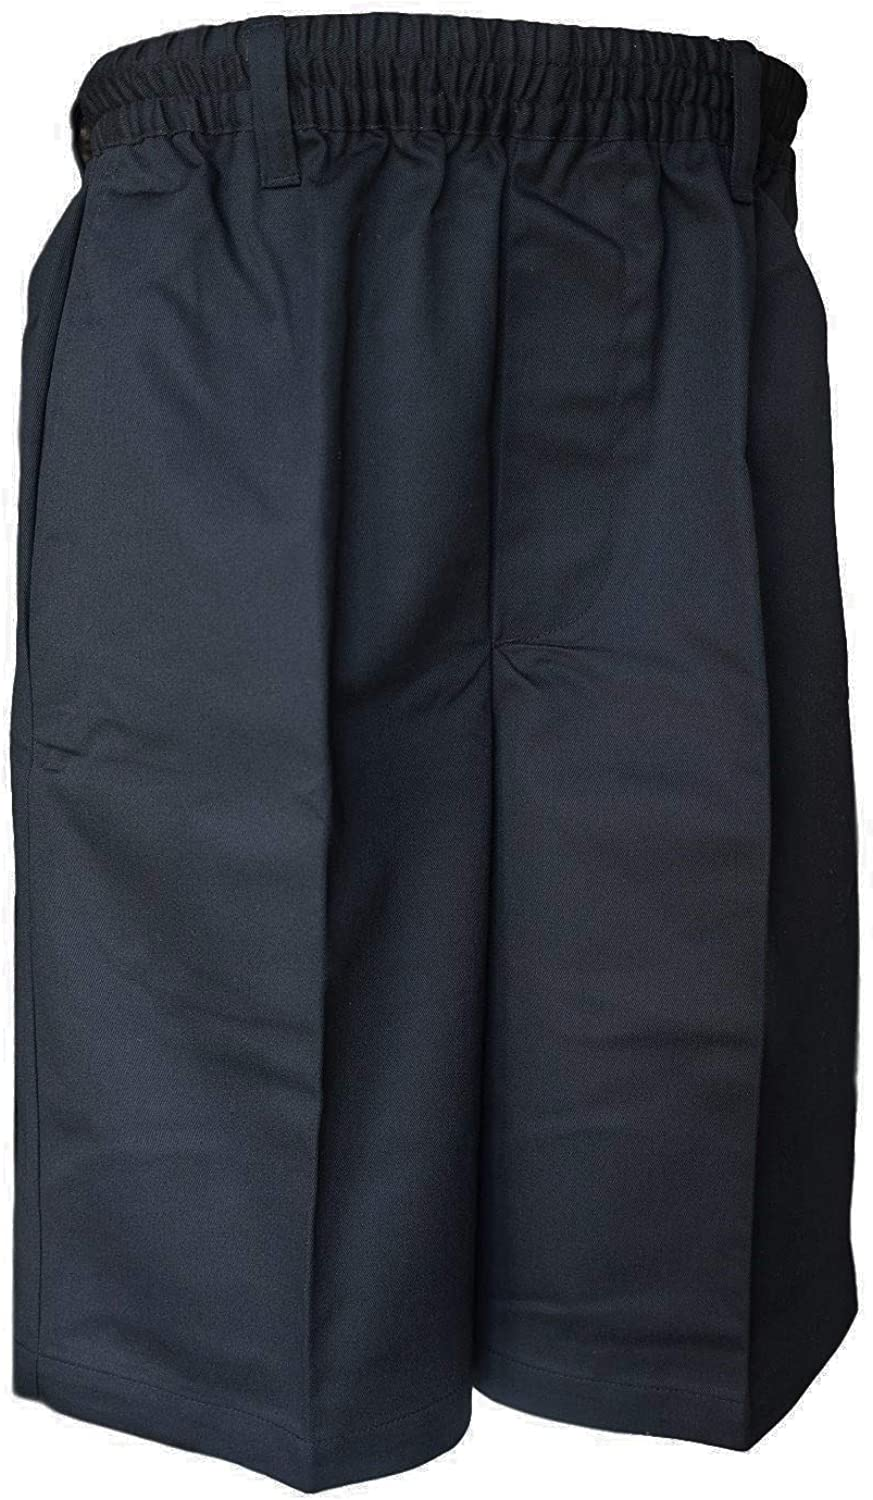 Benefit Wear Mens Full Elastic Waist Pull-On Shorts with Mock Fly